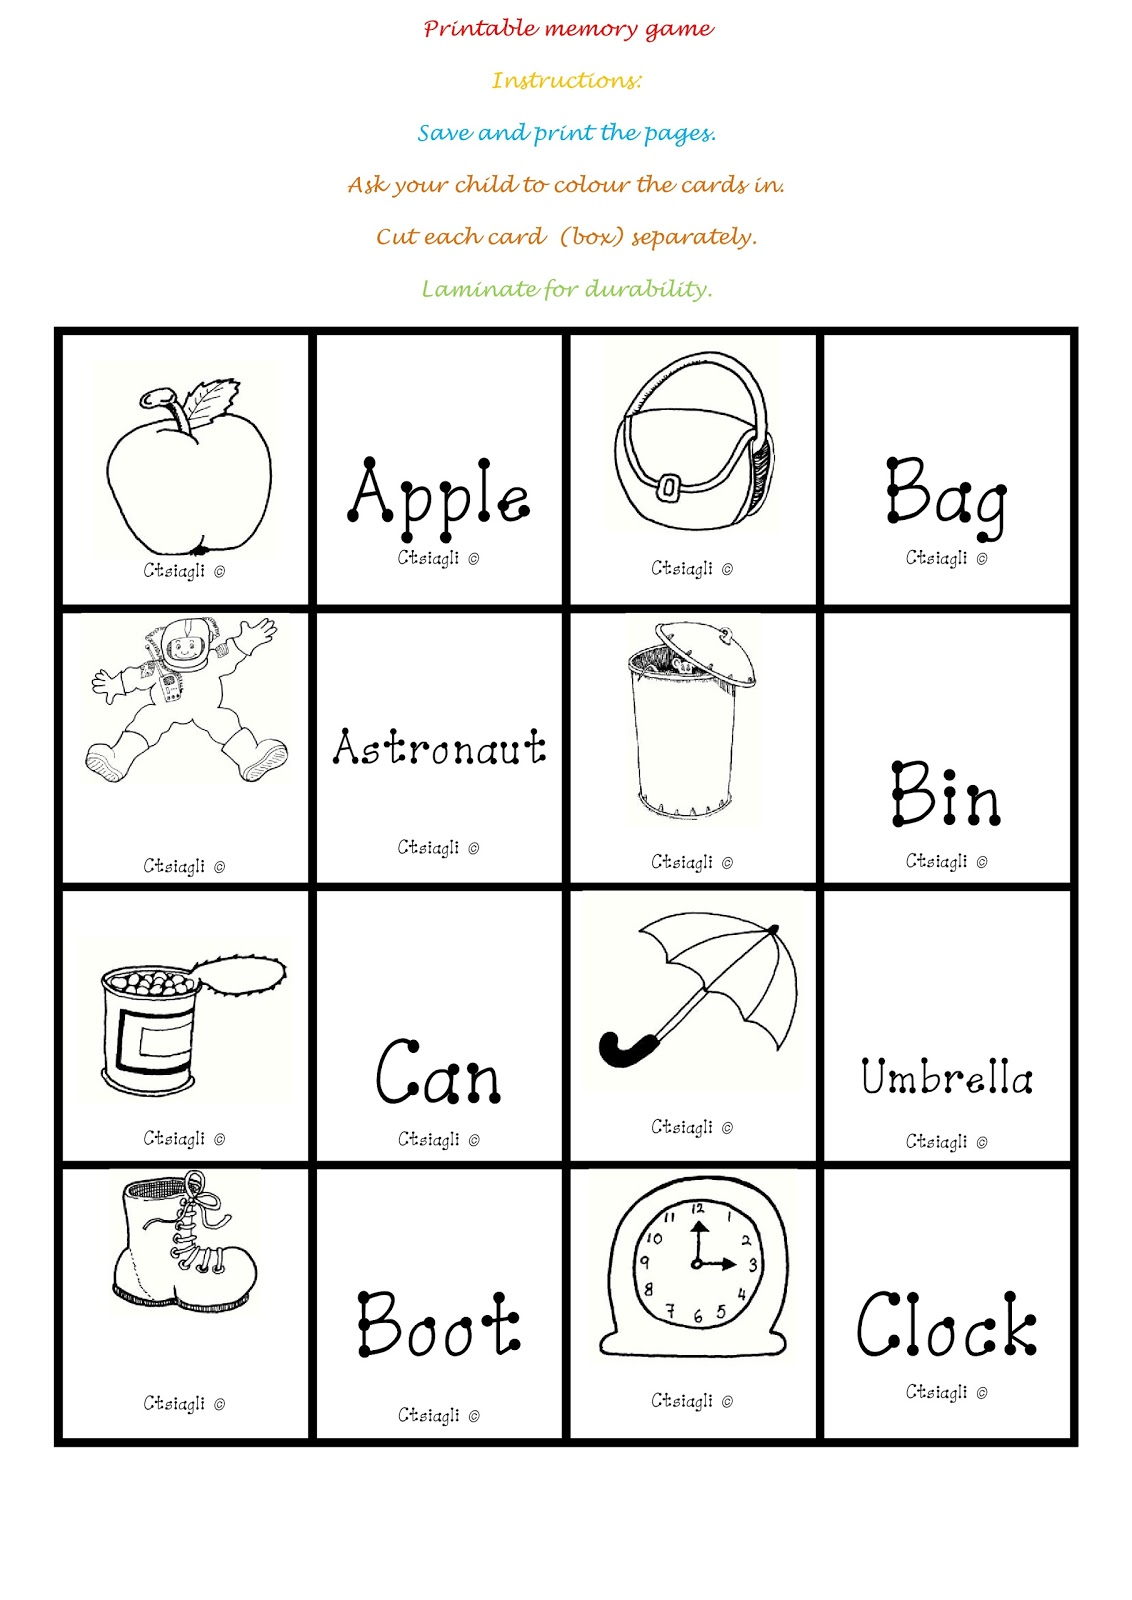 I Teacher Printable Memory Game